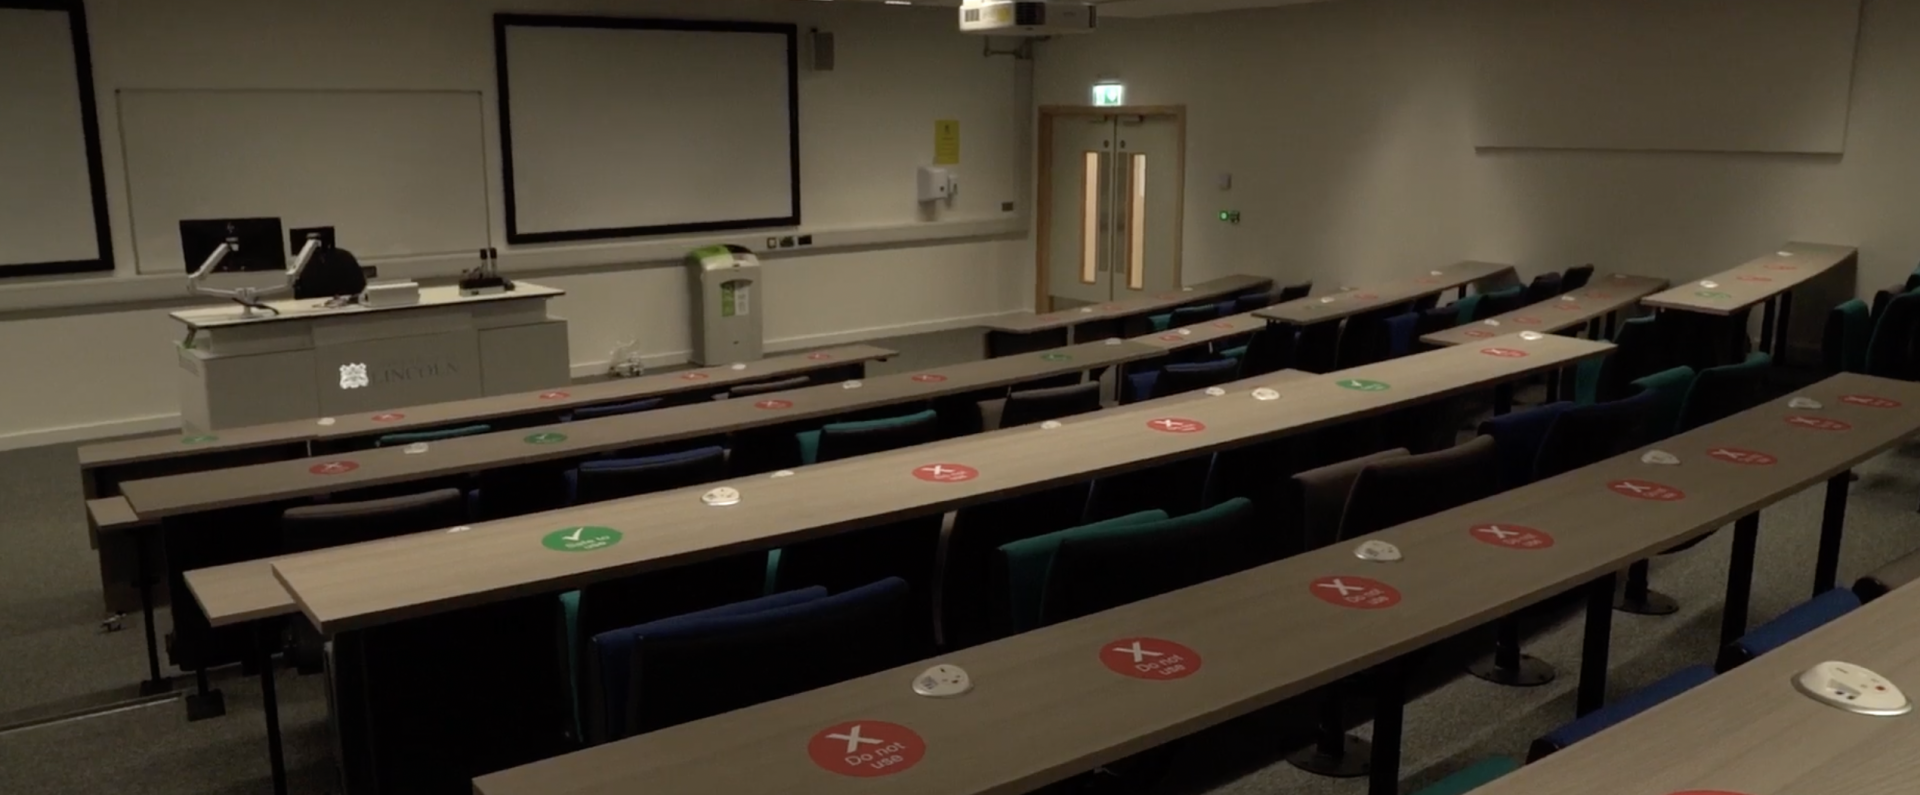 Medical building lecture hall. Shows rows of seating facing a blank projector screen.